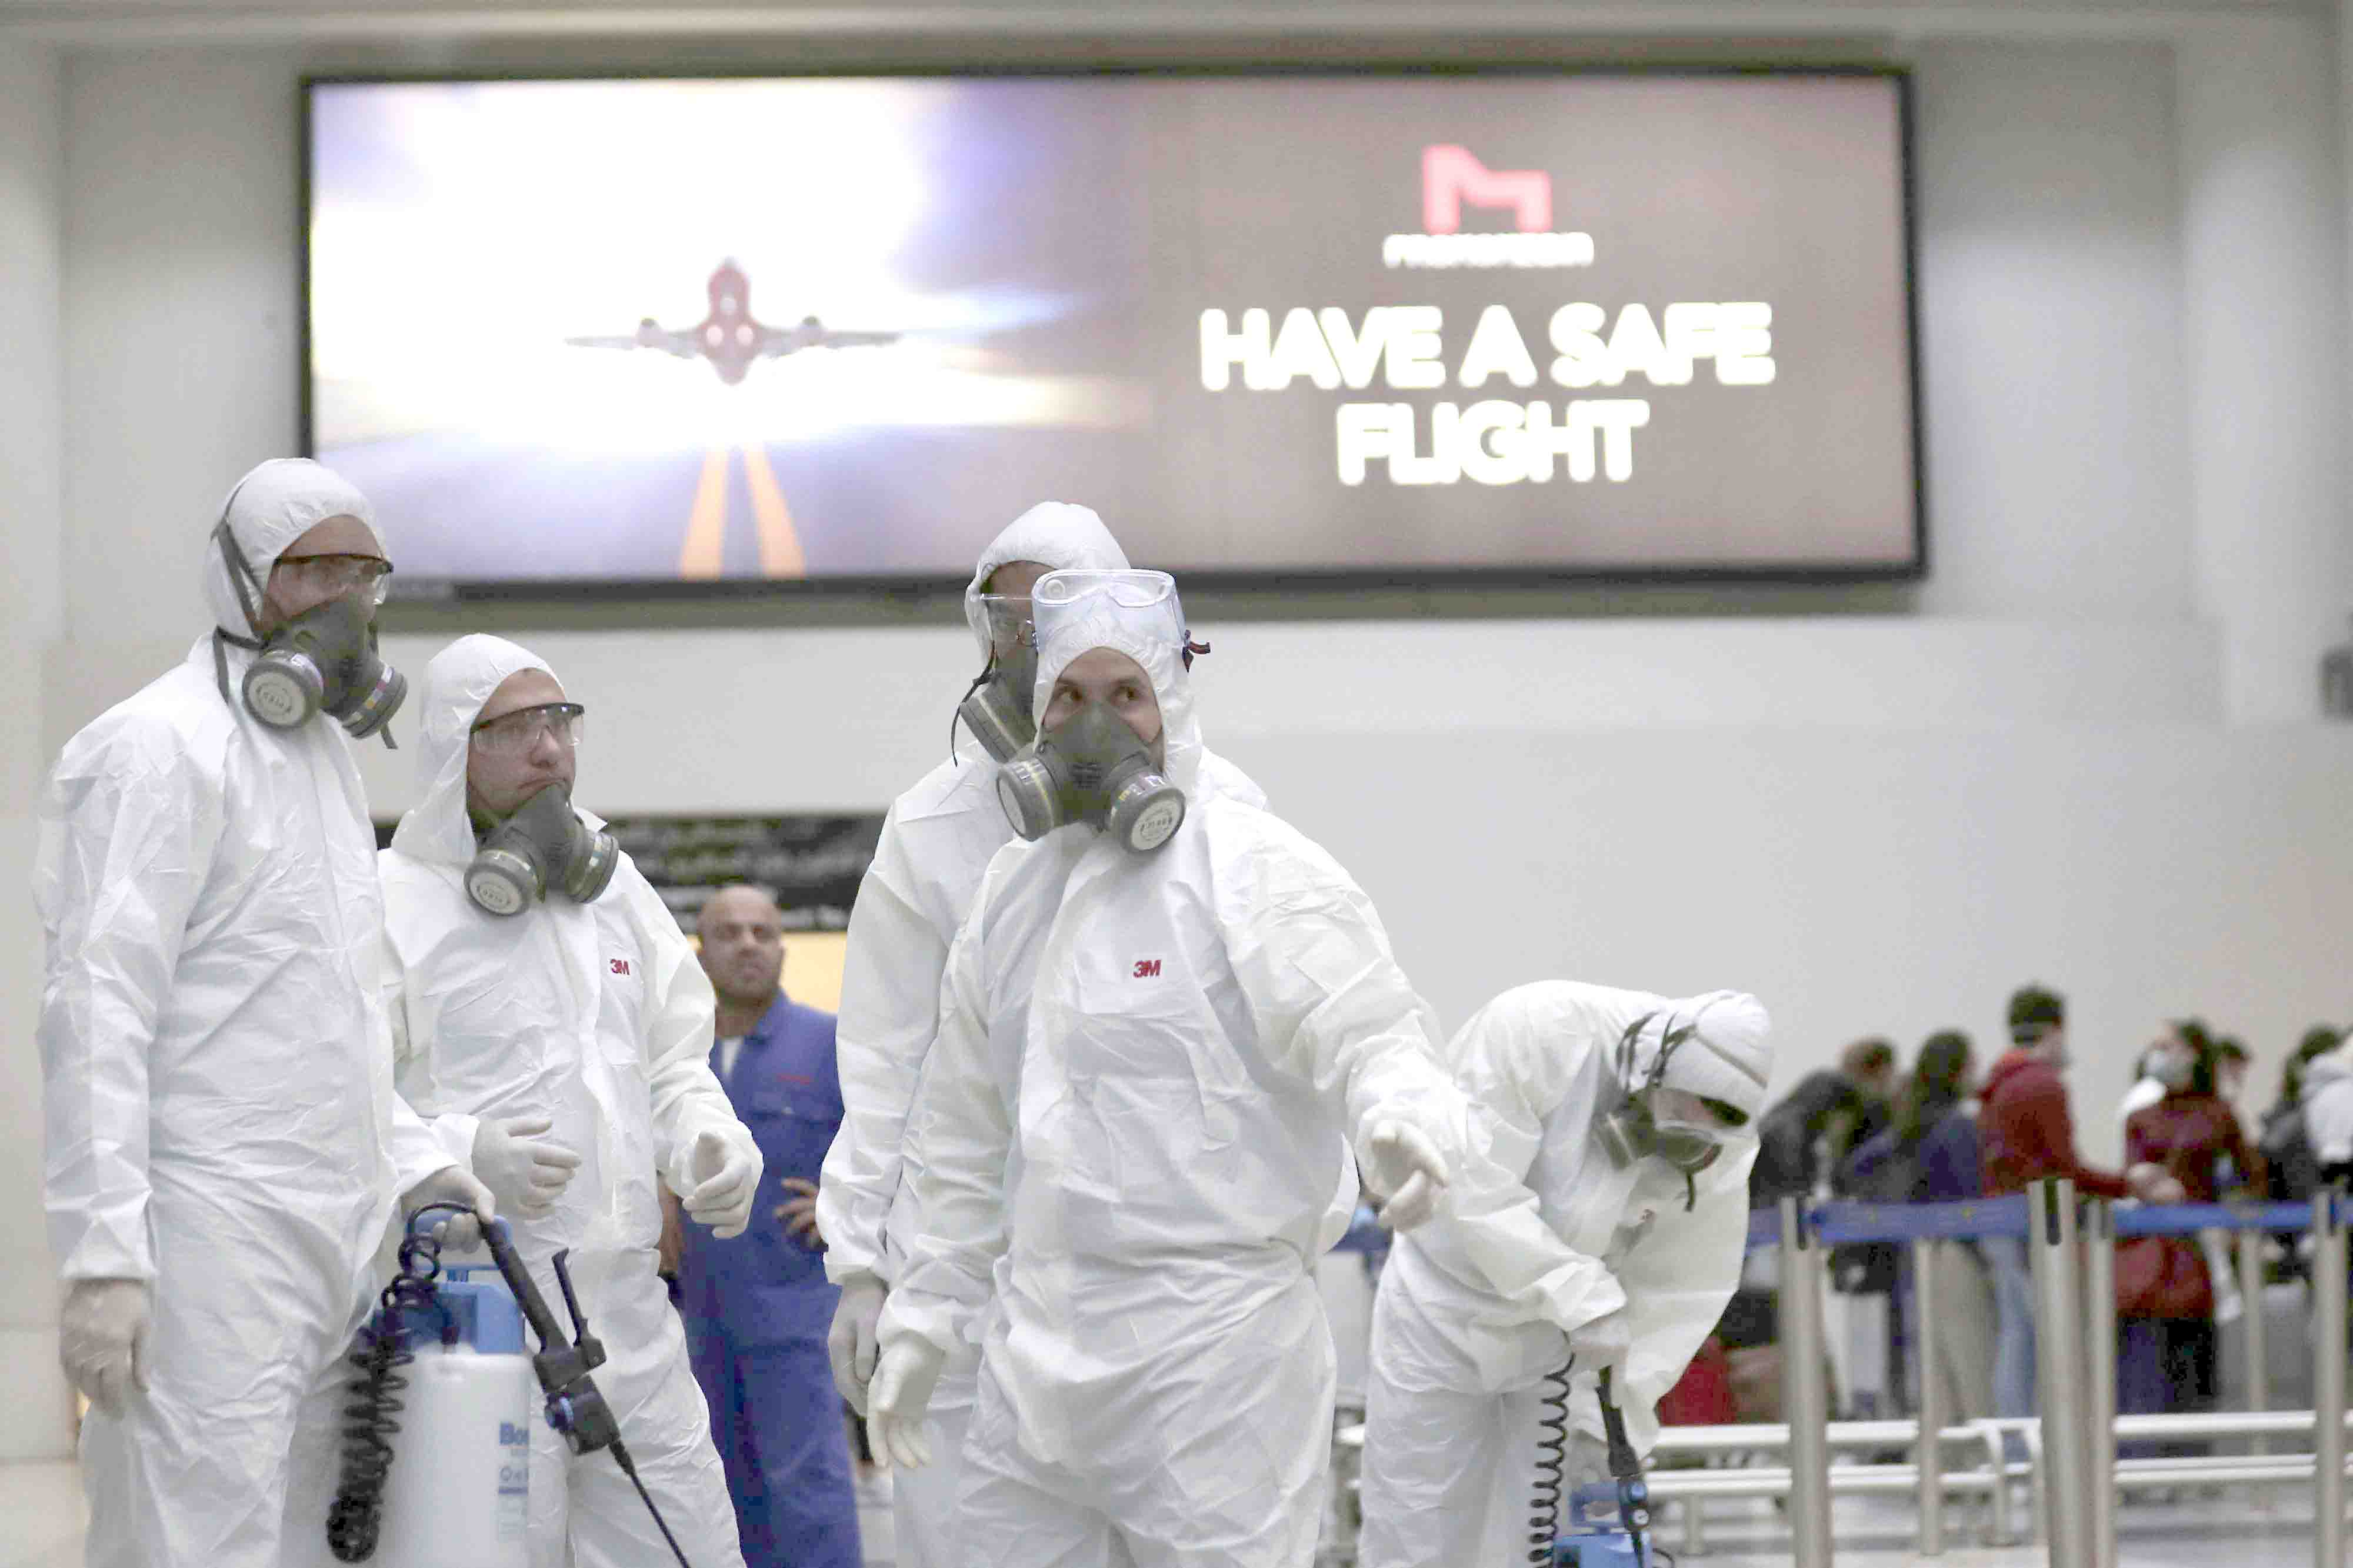 Workers wearing protective gear spray disinfectant as a precaution against the coronavirus outbreak in the departure terminal at the Rafik Hariri International Airport in Beirut, March 5. (AP)